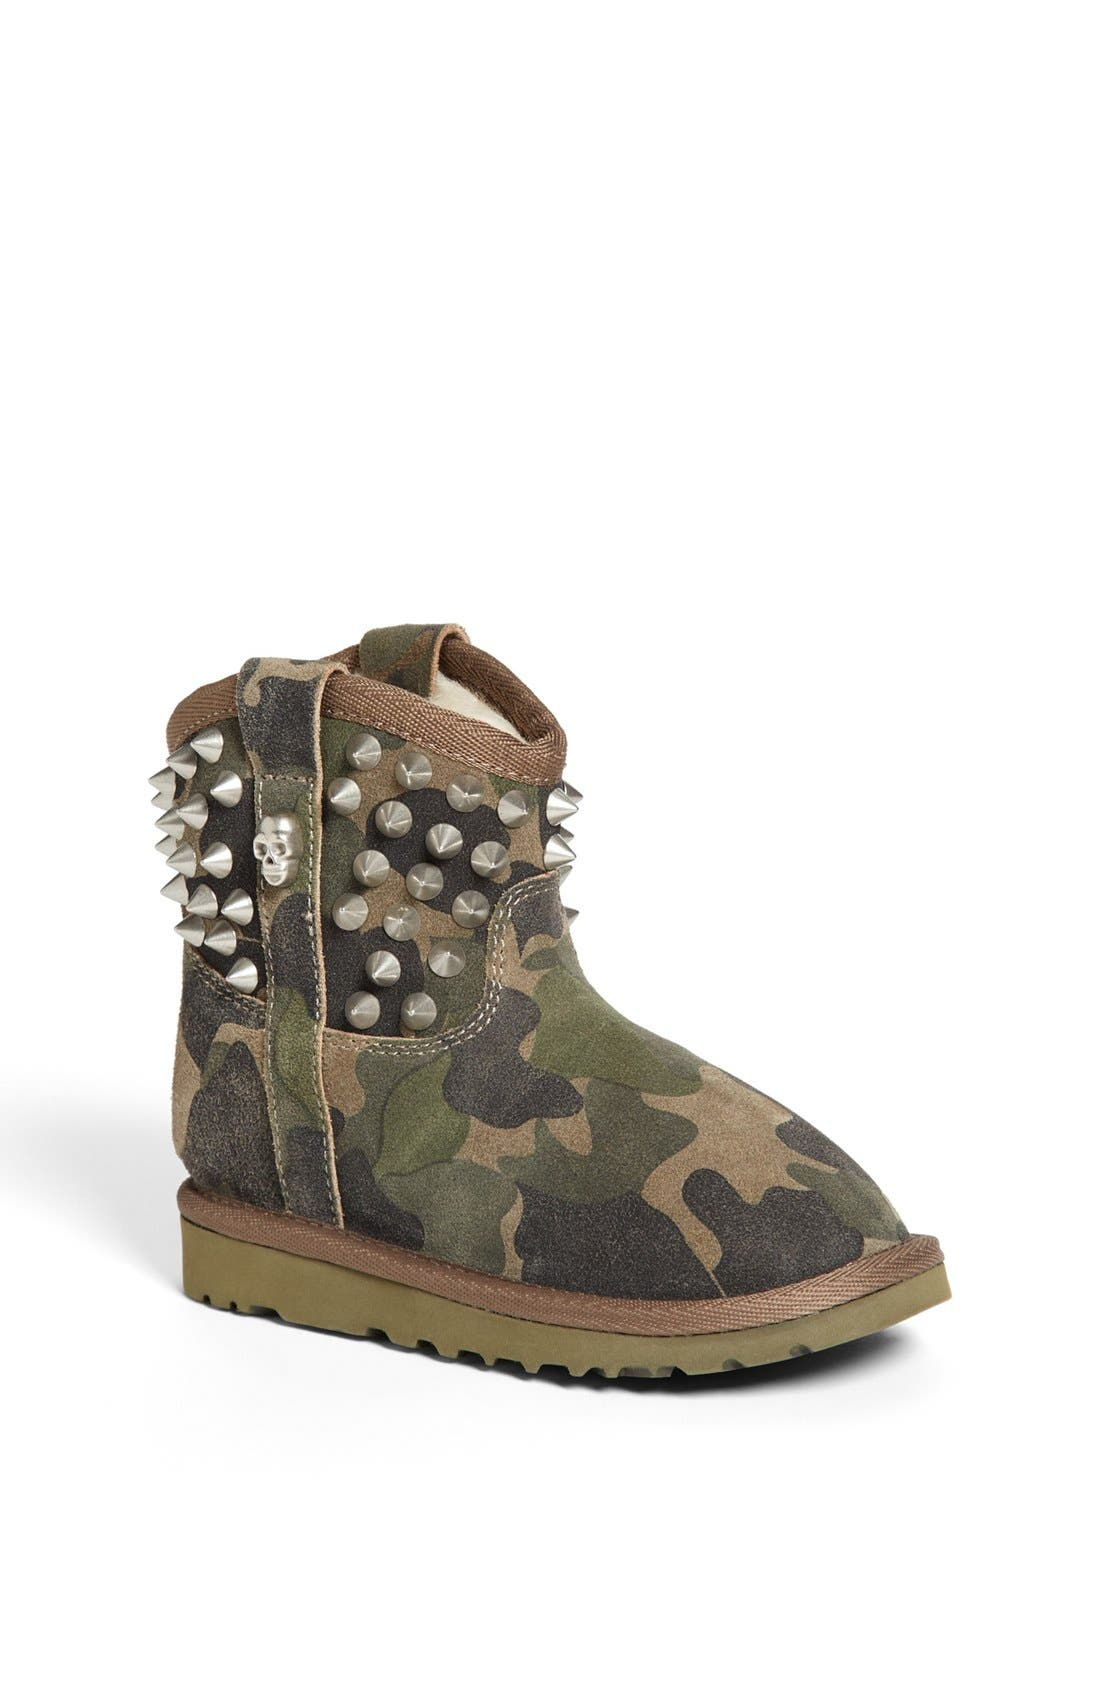 Main Image - Ash 'You' Studded Camo Boot (Toddler, Little Kid & Big Kid)